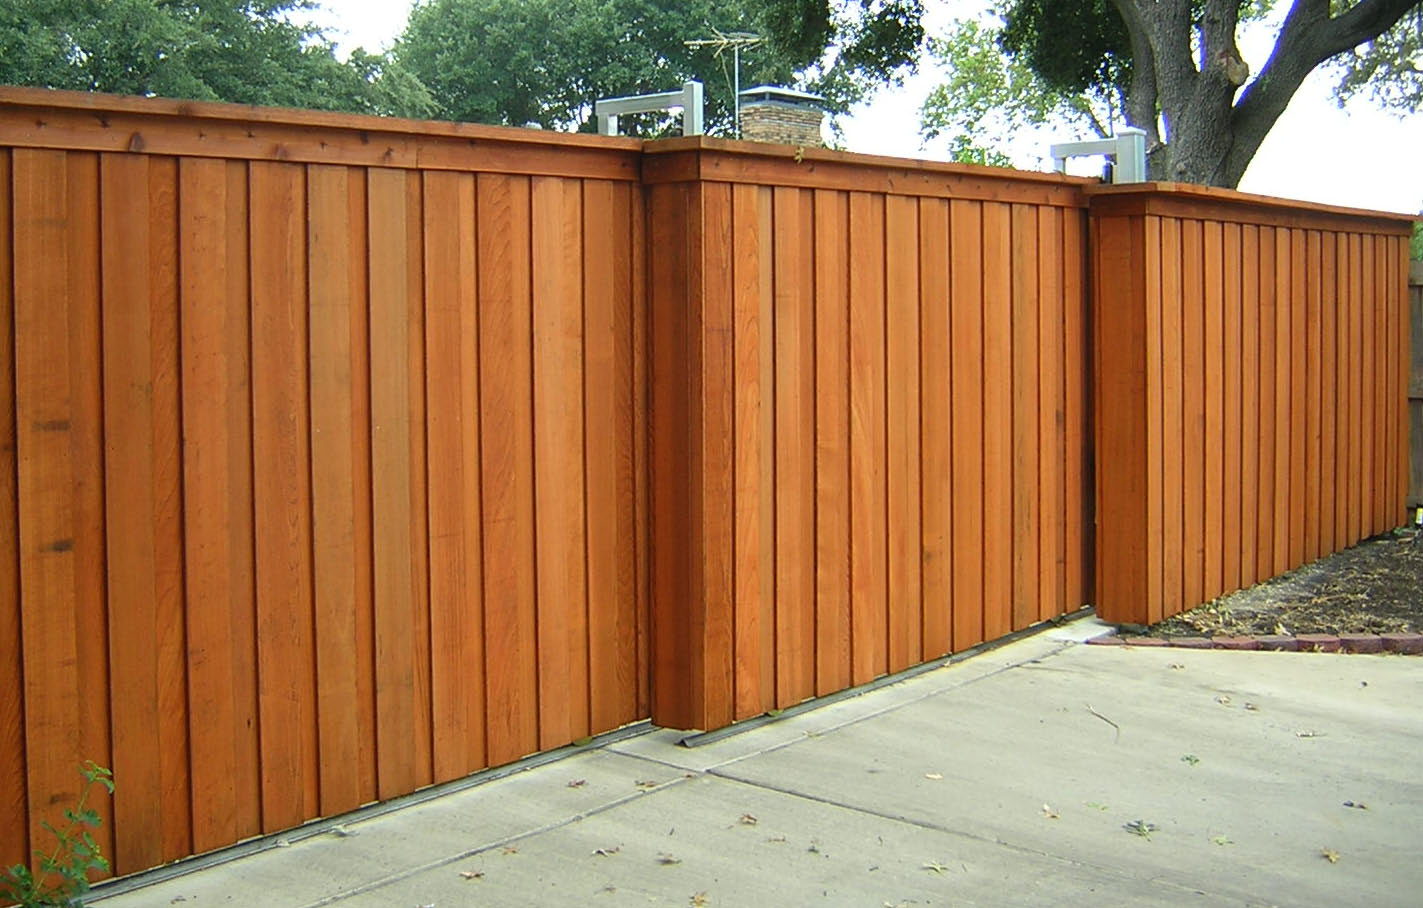 Picture of: Wood Fence Designs for Backyard